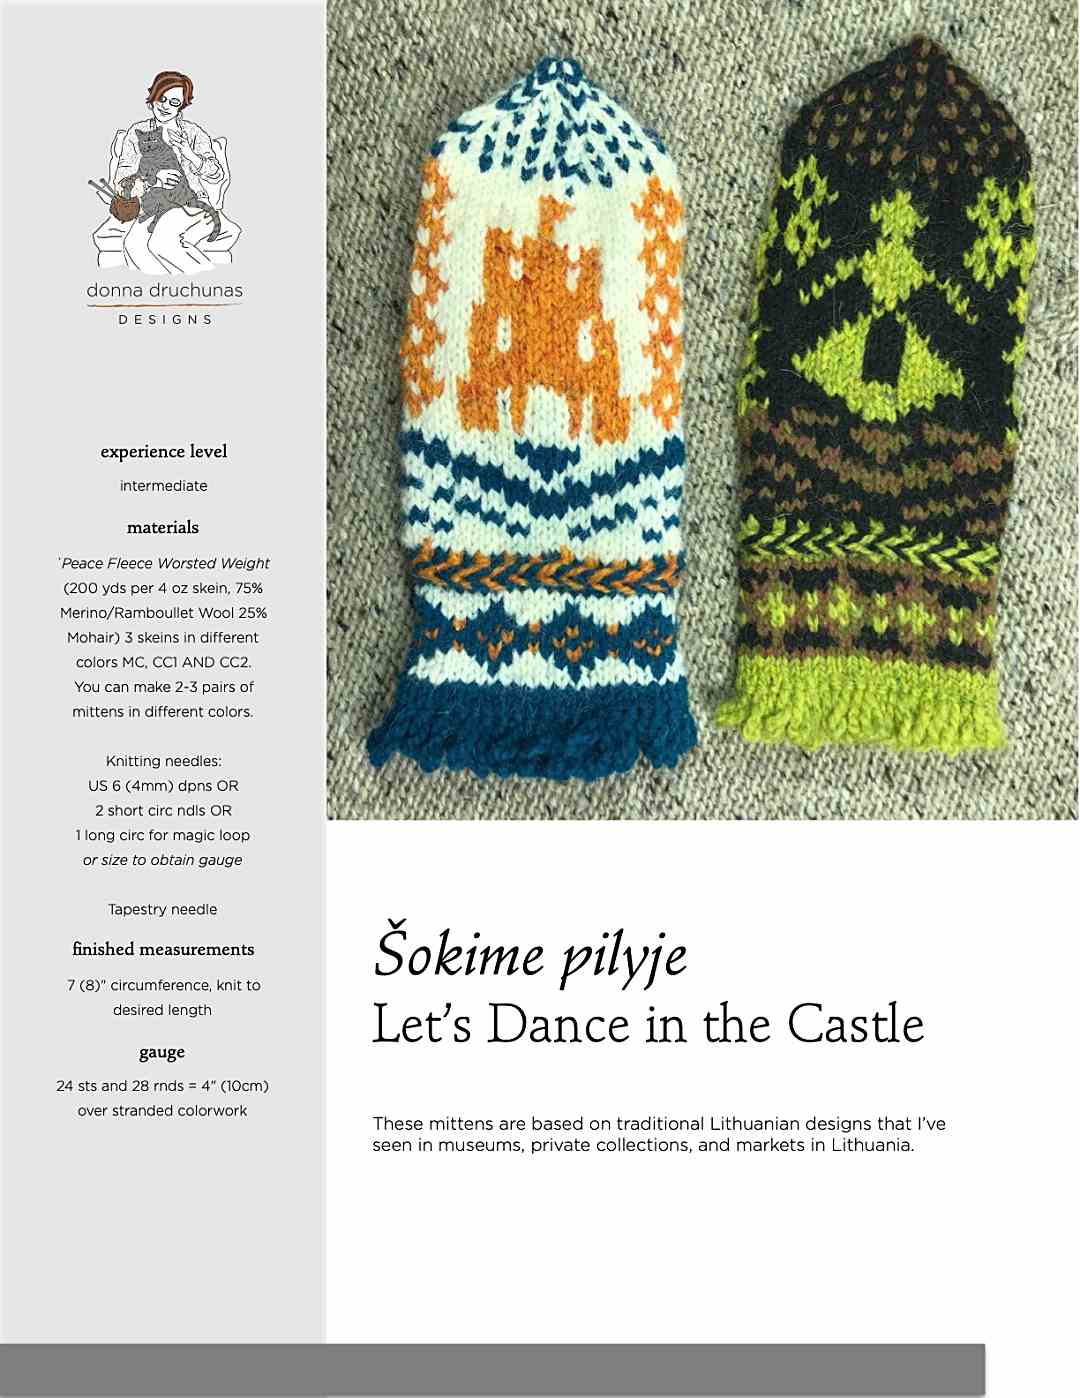 Ladies in the Castle Mittens Pattern 1